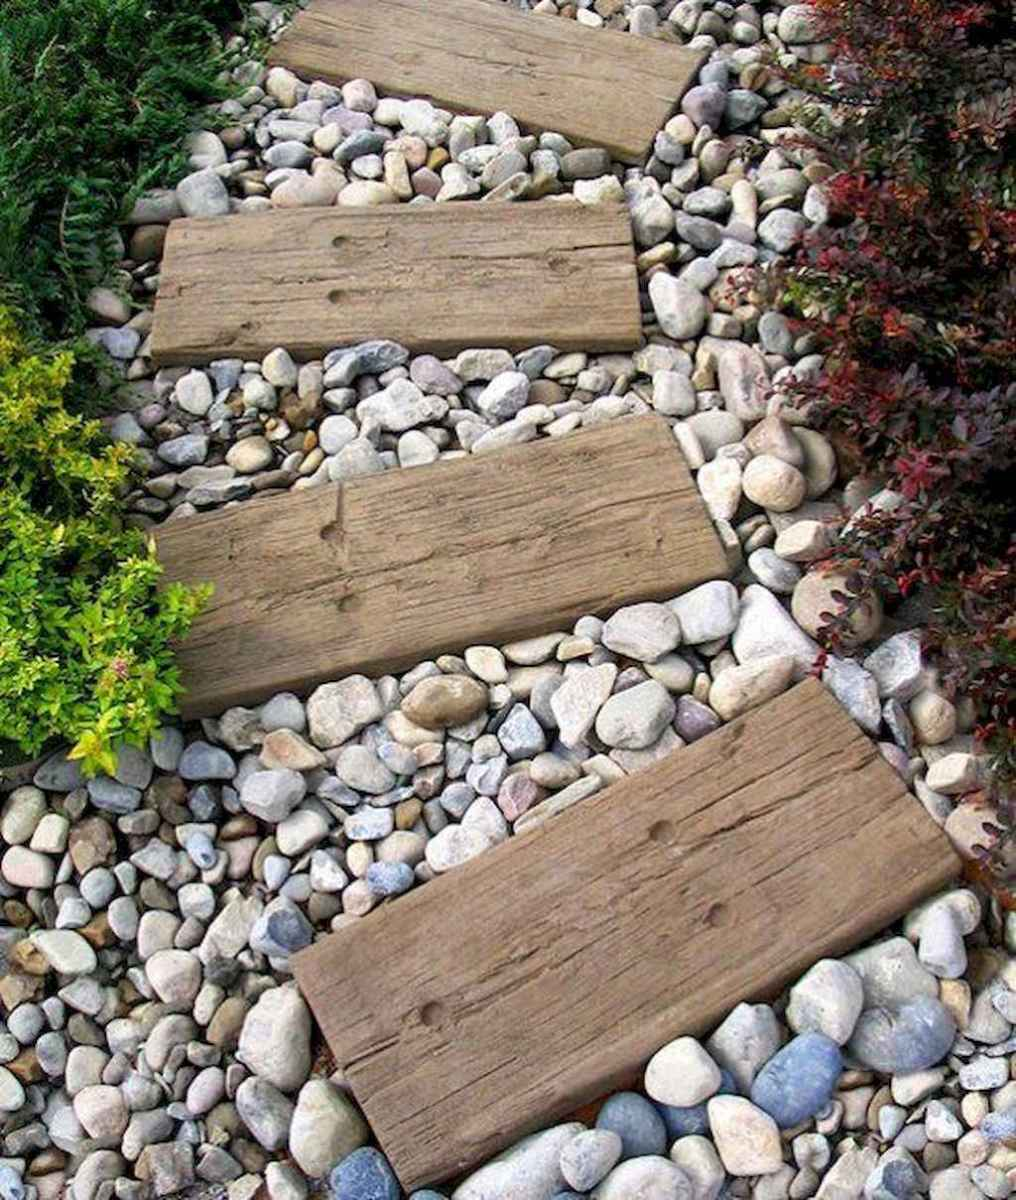 Top 100 stepping stones pathway remodel ideas (55)